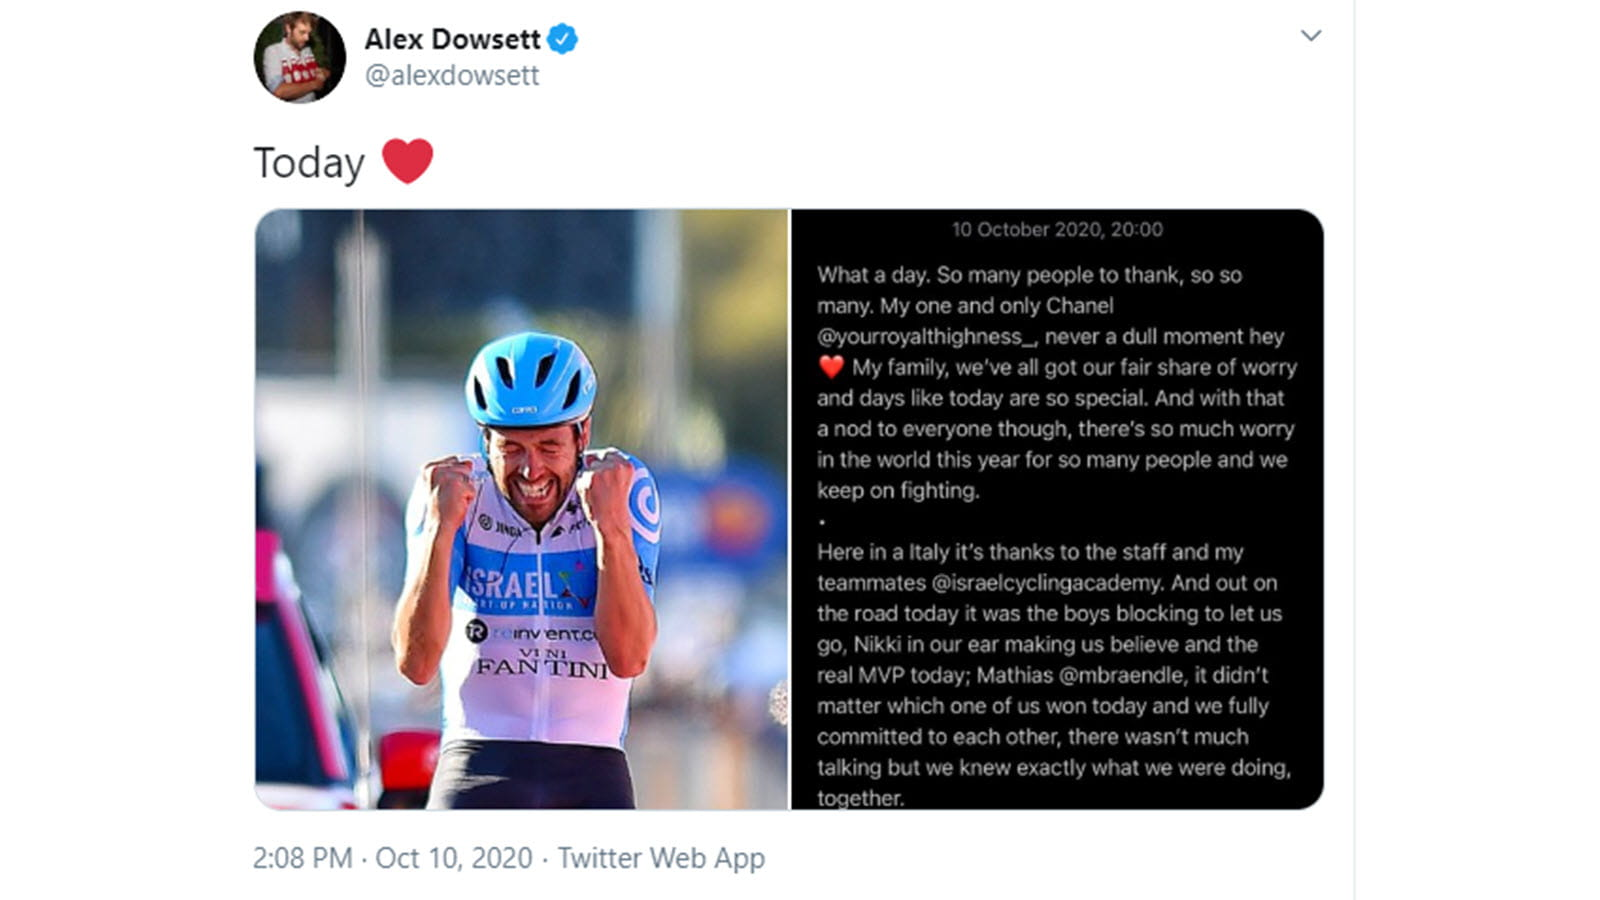 A victory tweet from cyclist Alex Dowsett after the Giro d'Italia